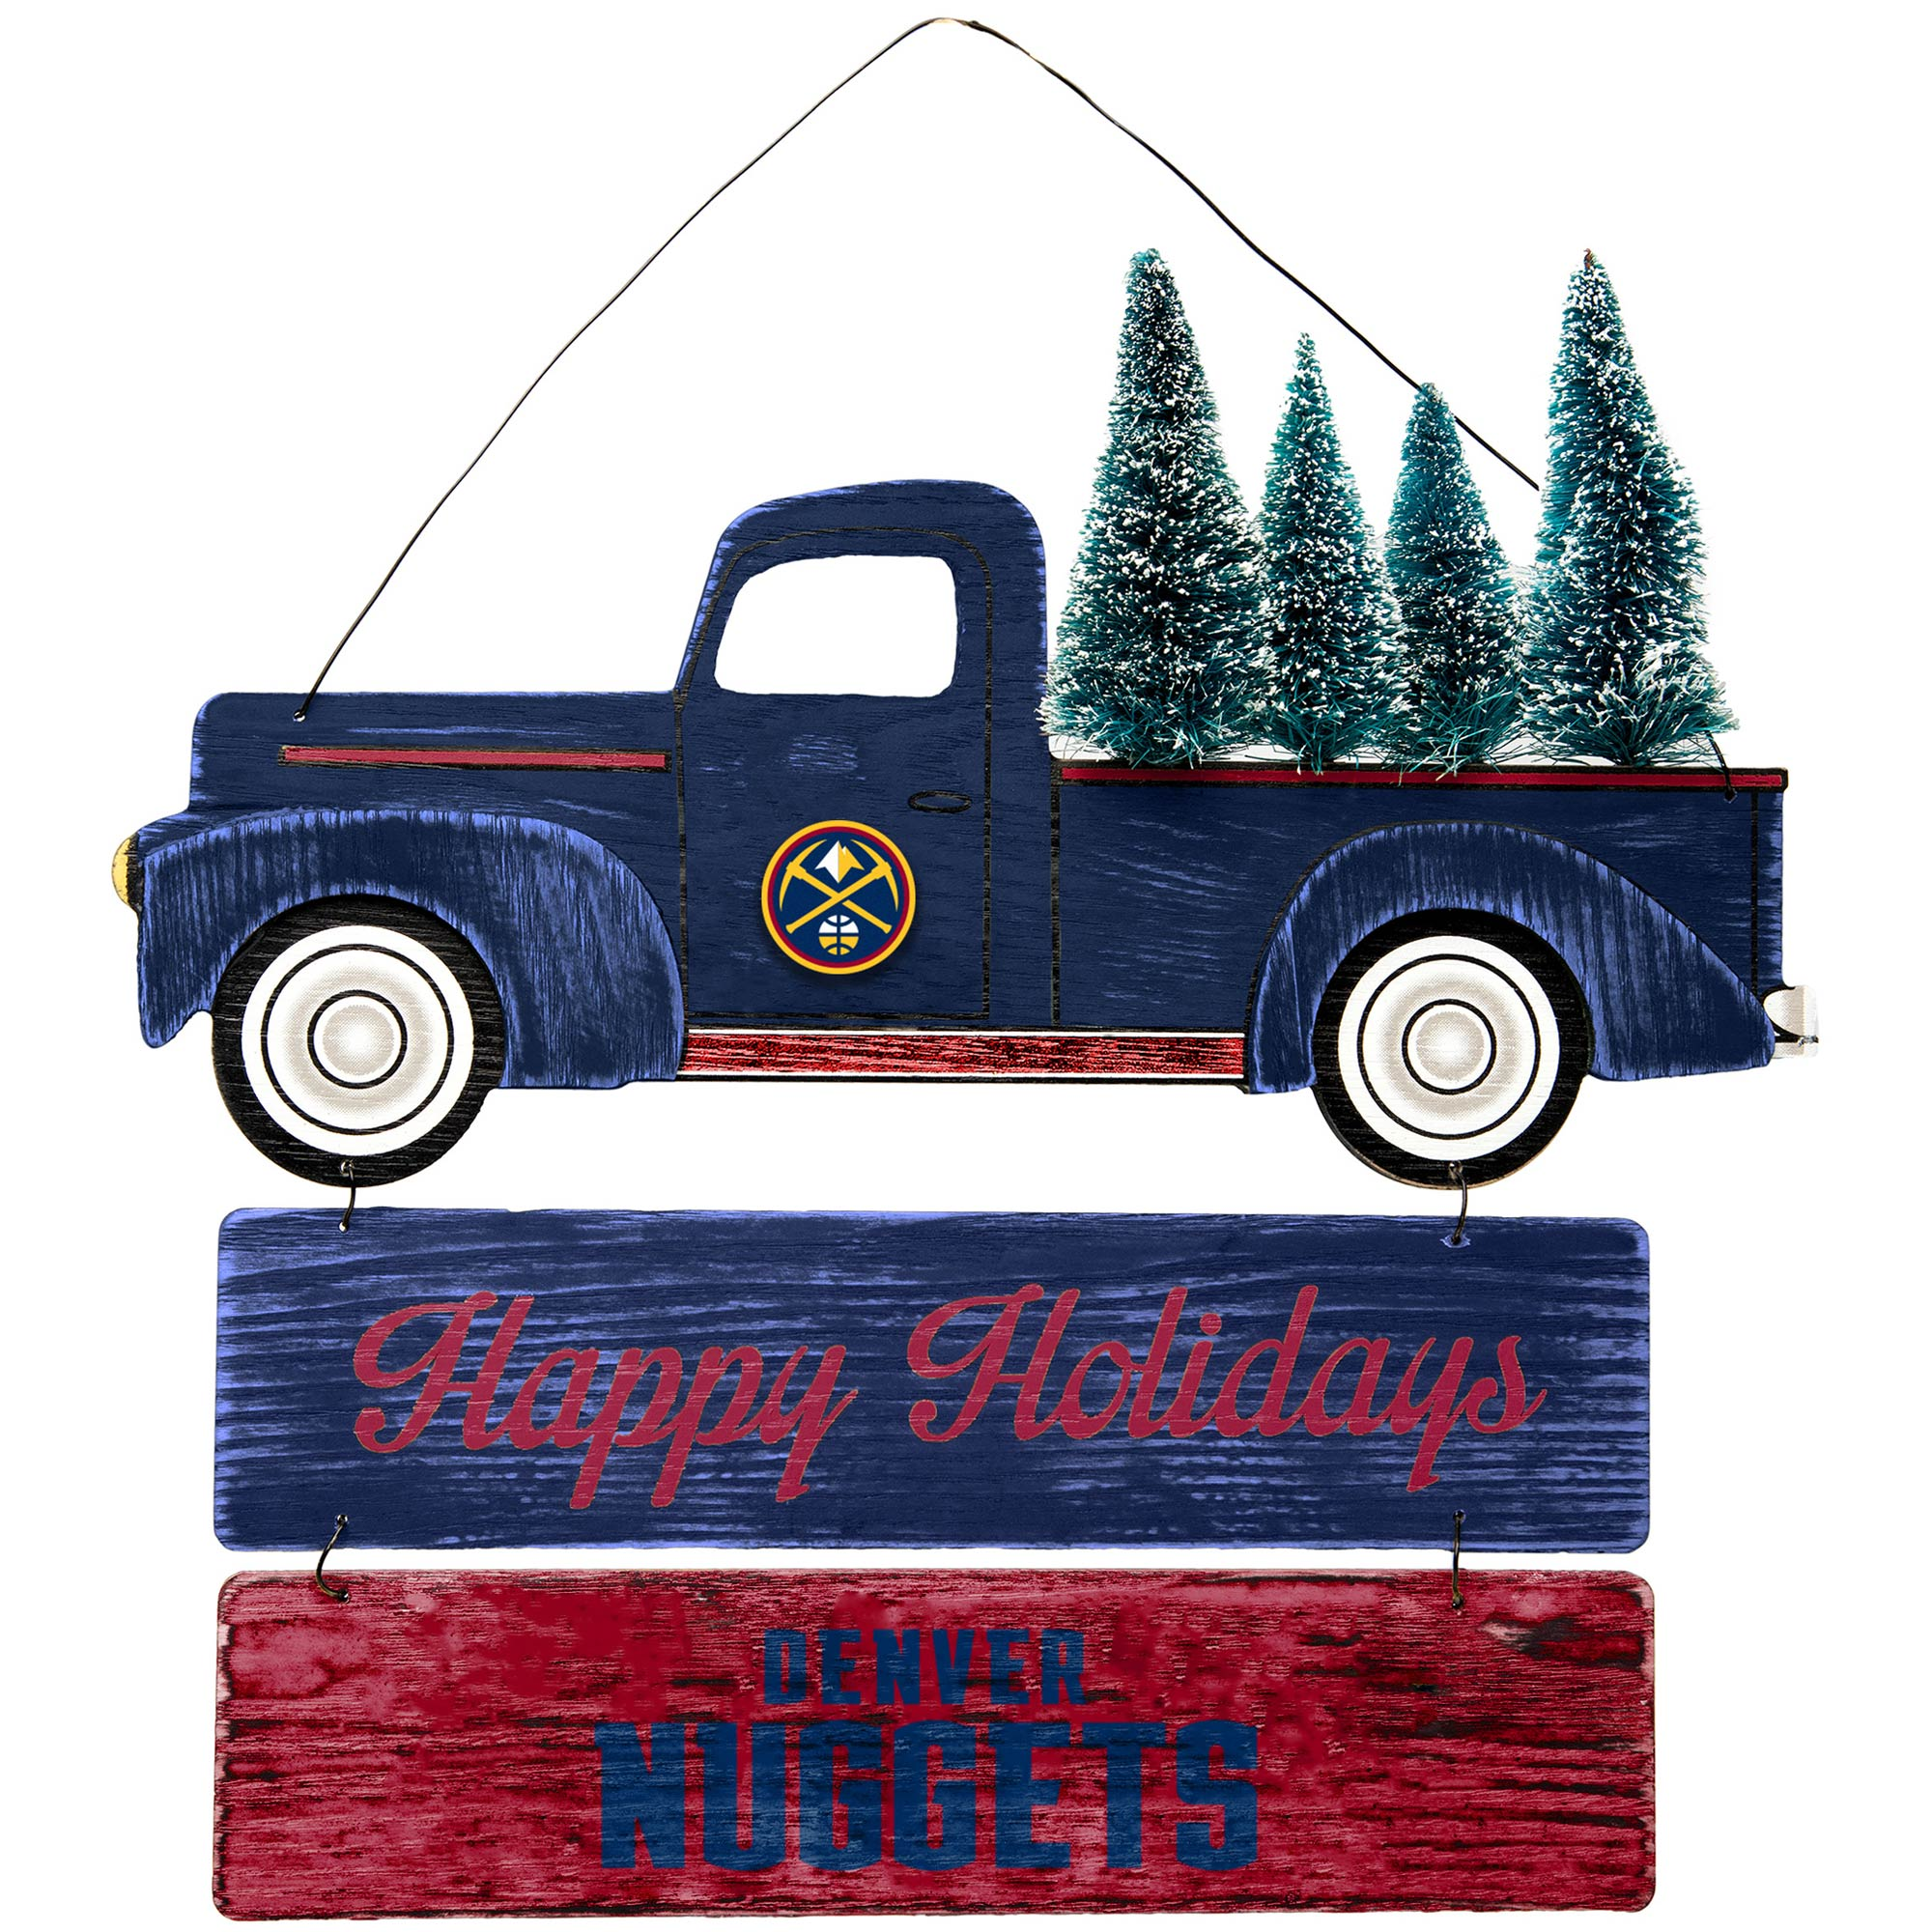 Denver Nuggets Truck and Tree Wooden Sign